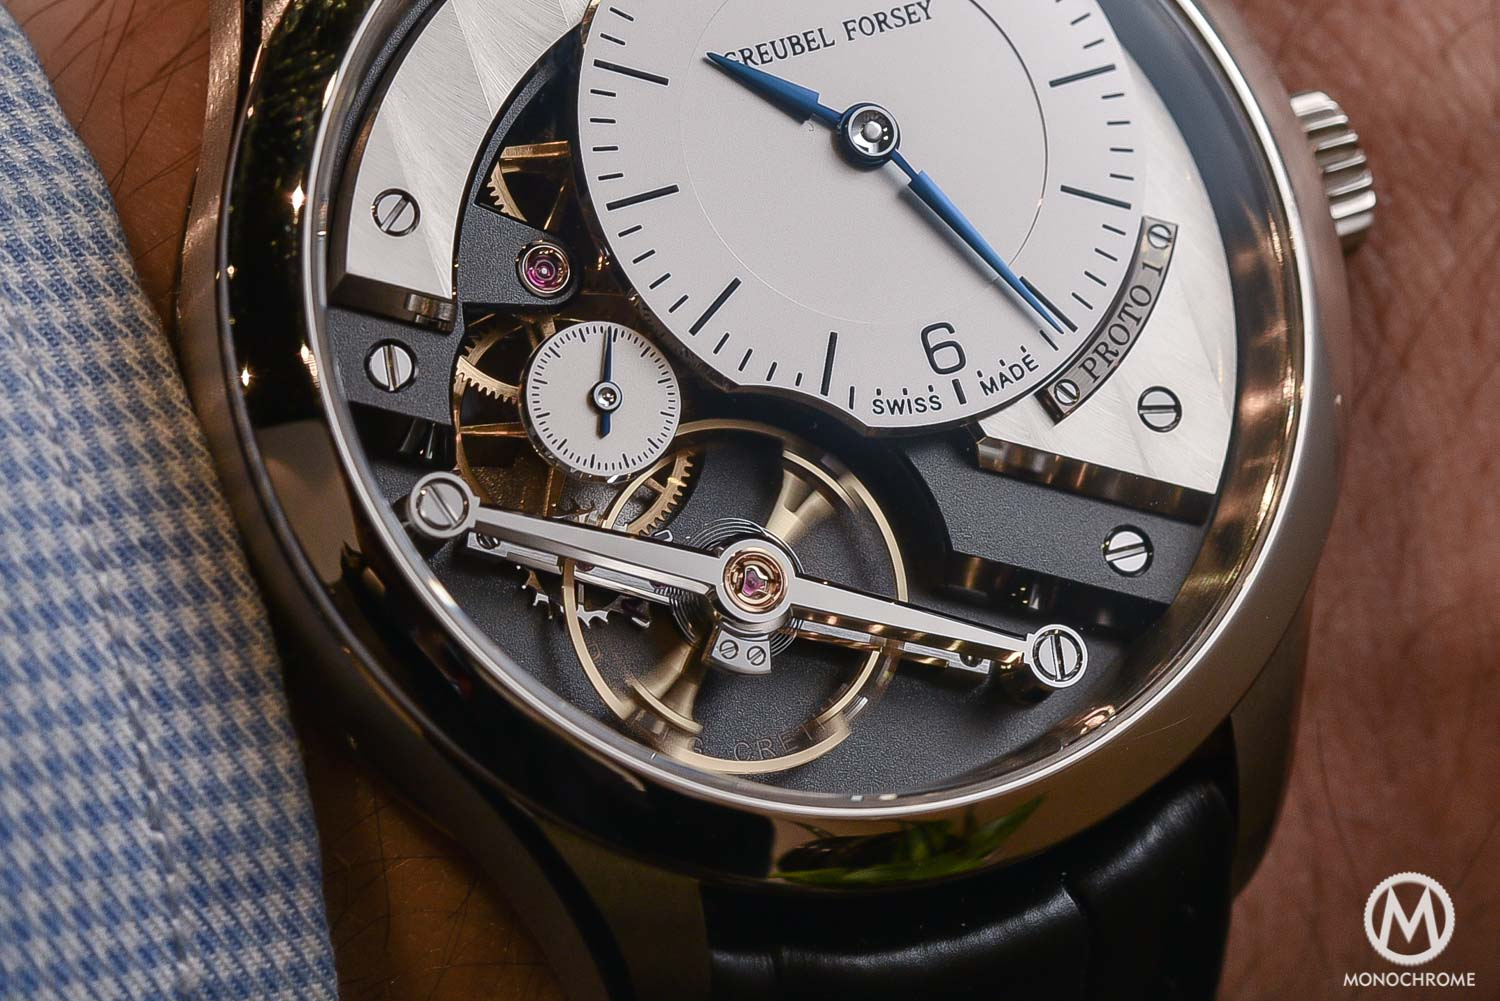 Greubel Forsey Signature 1 - Stainless steel entry level - SIHH 2016 - close up balance wheel